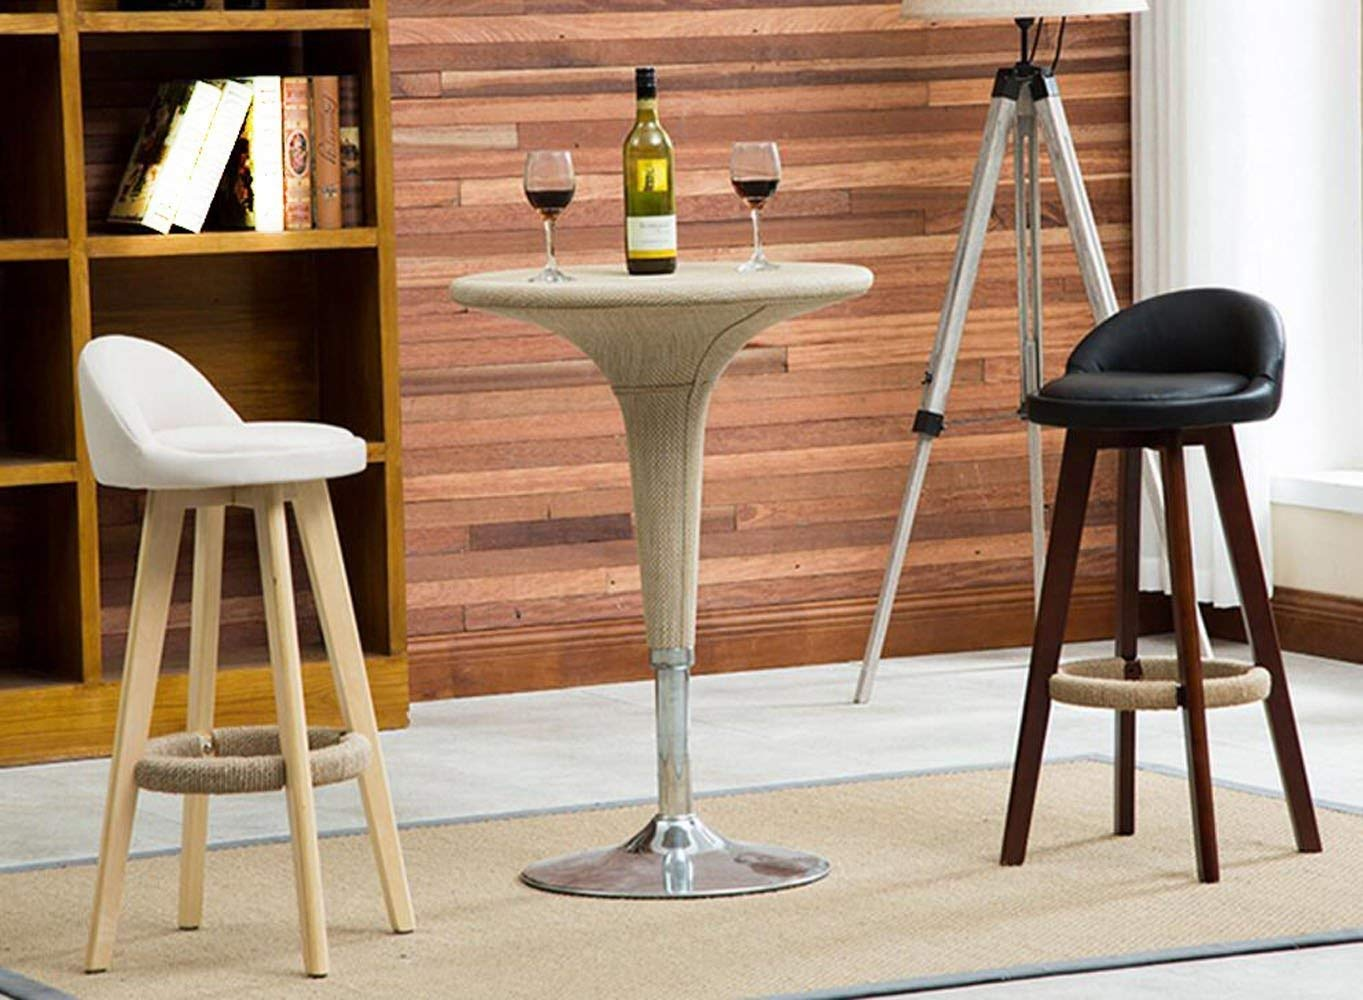 fec6321969e5 Amazon.com  Useful Home Furniture European Style Solid Wood bar Chair  Simple high Chair Reception Chair KTV bar Stool Vintage American high Stool  (Color   M ...